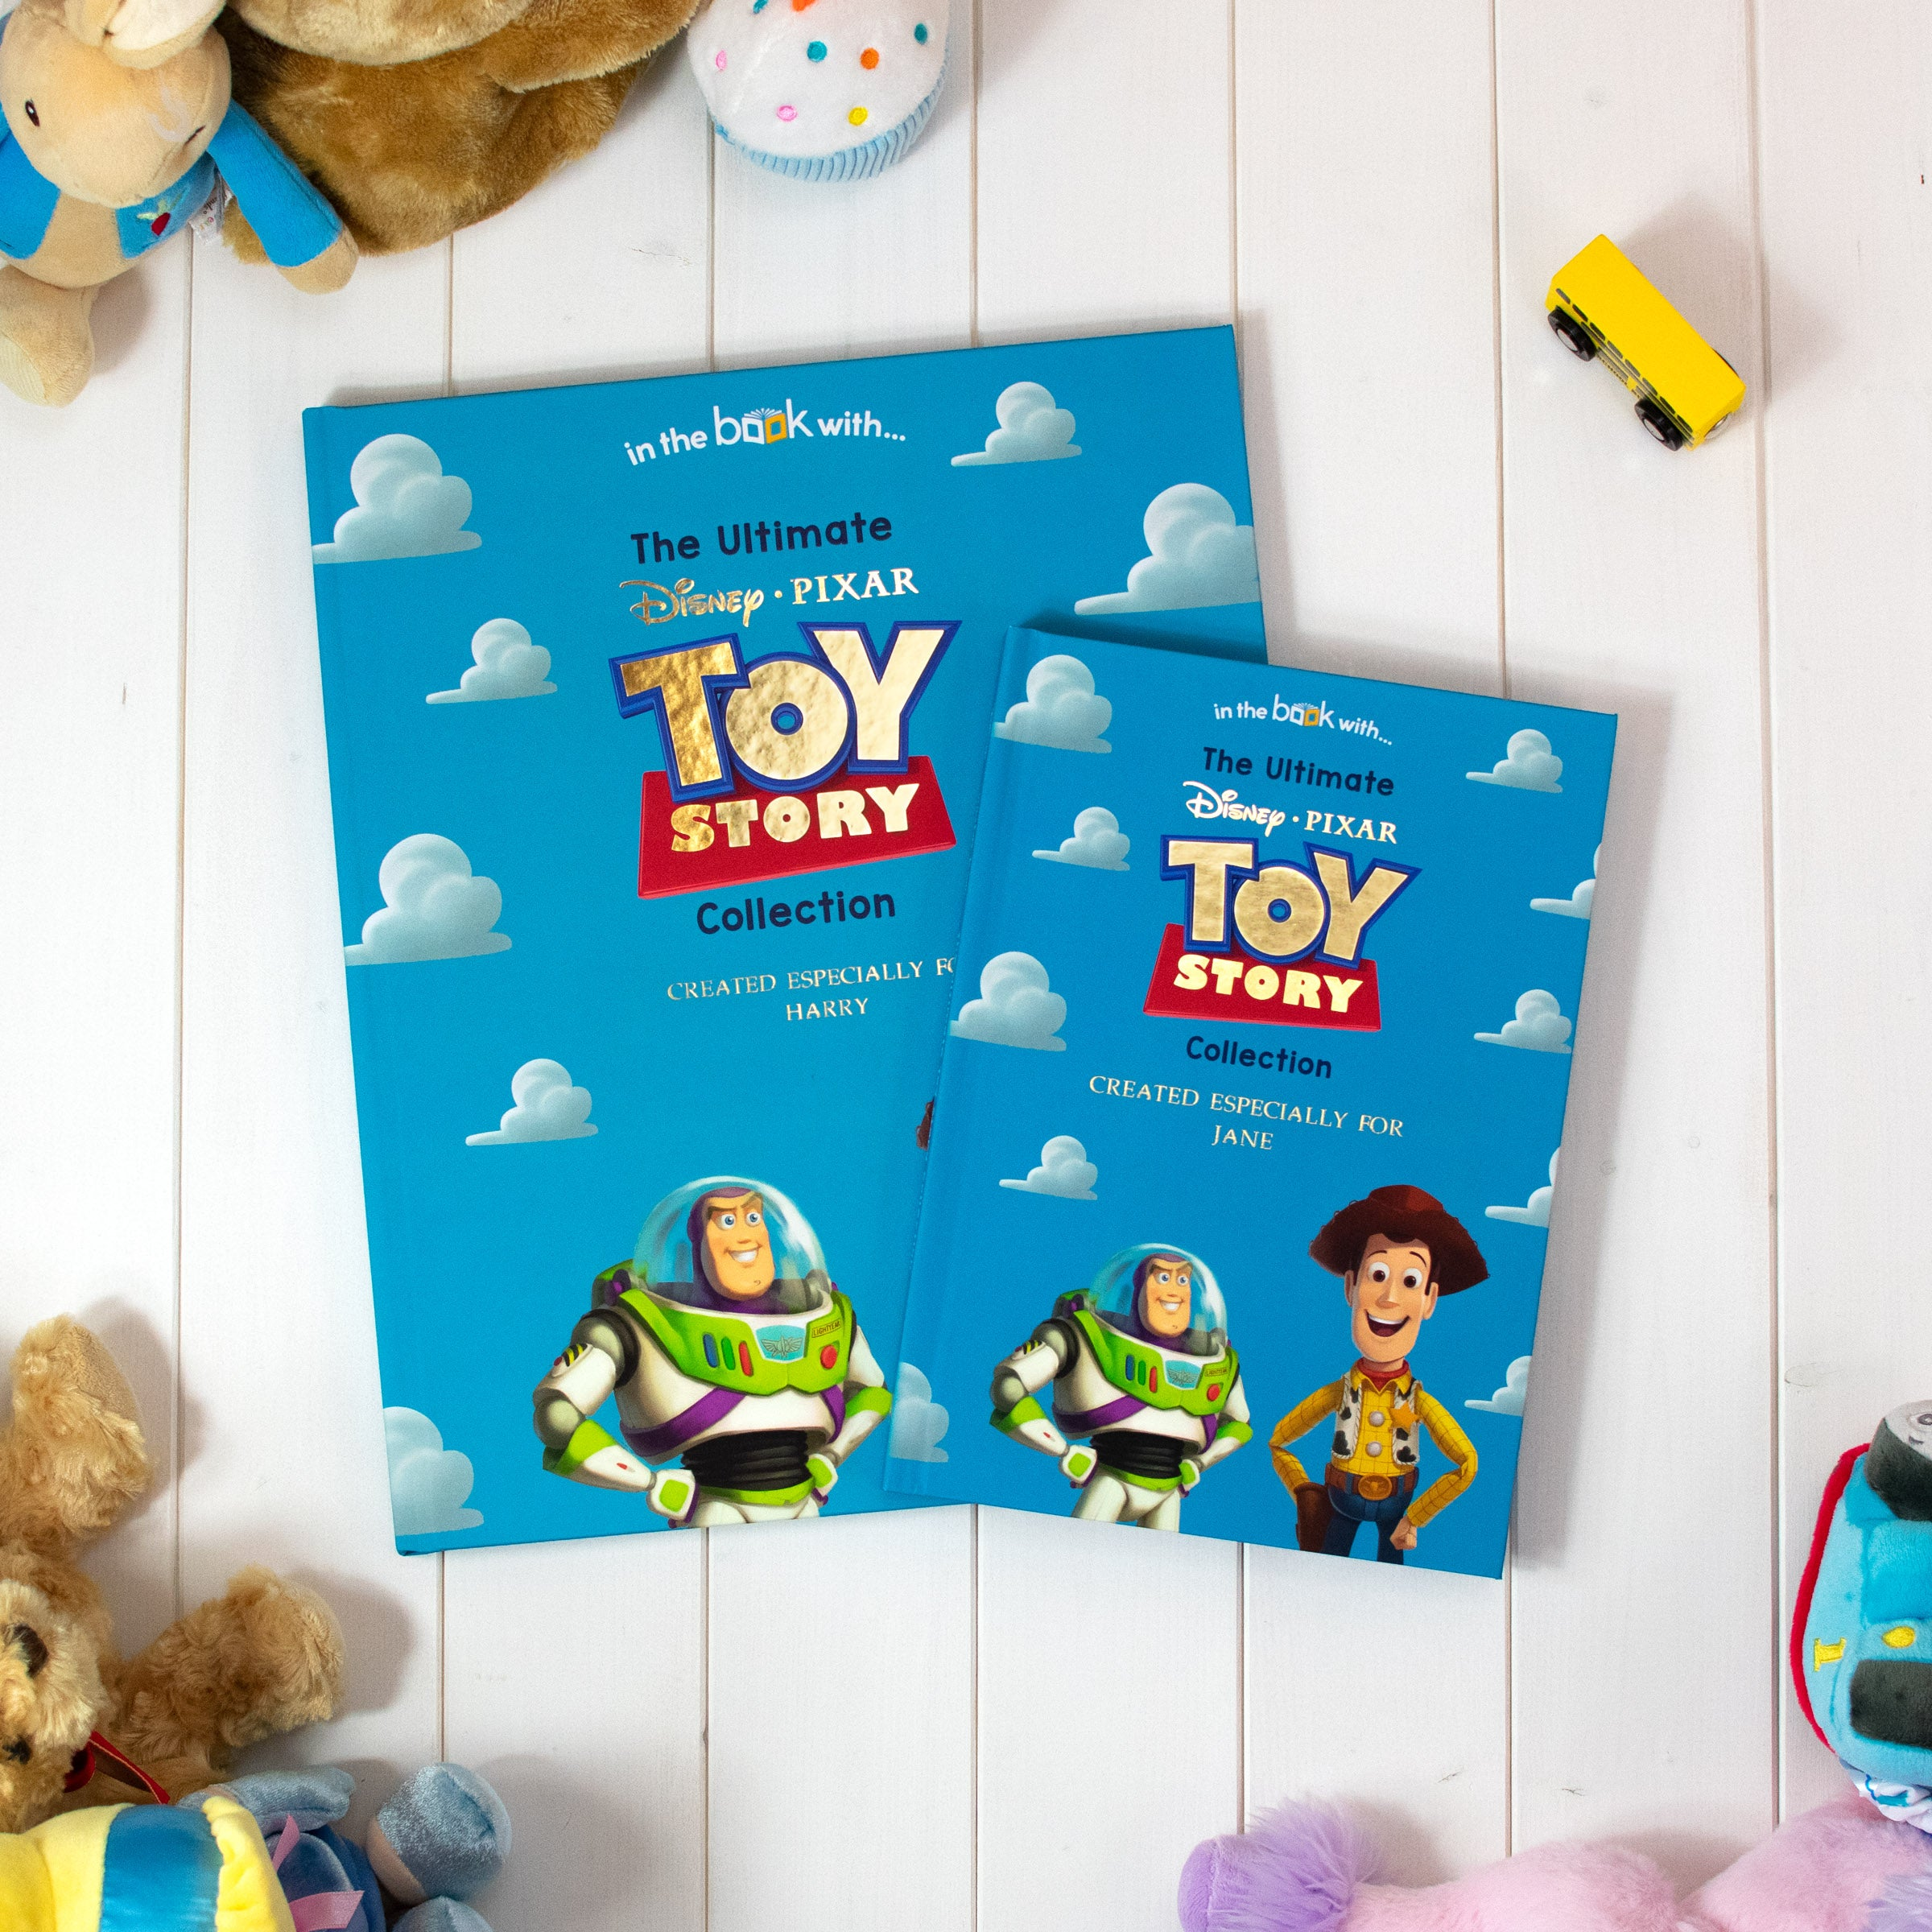 Premium Disney Personalised Toy Story Collection Book, Media by Low Cost Gifts